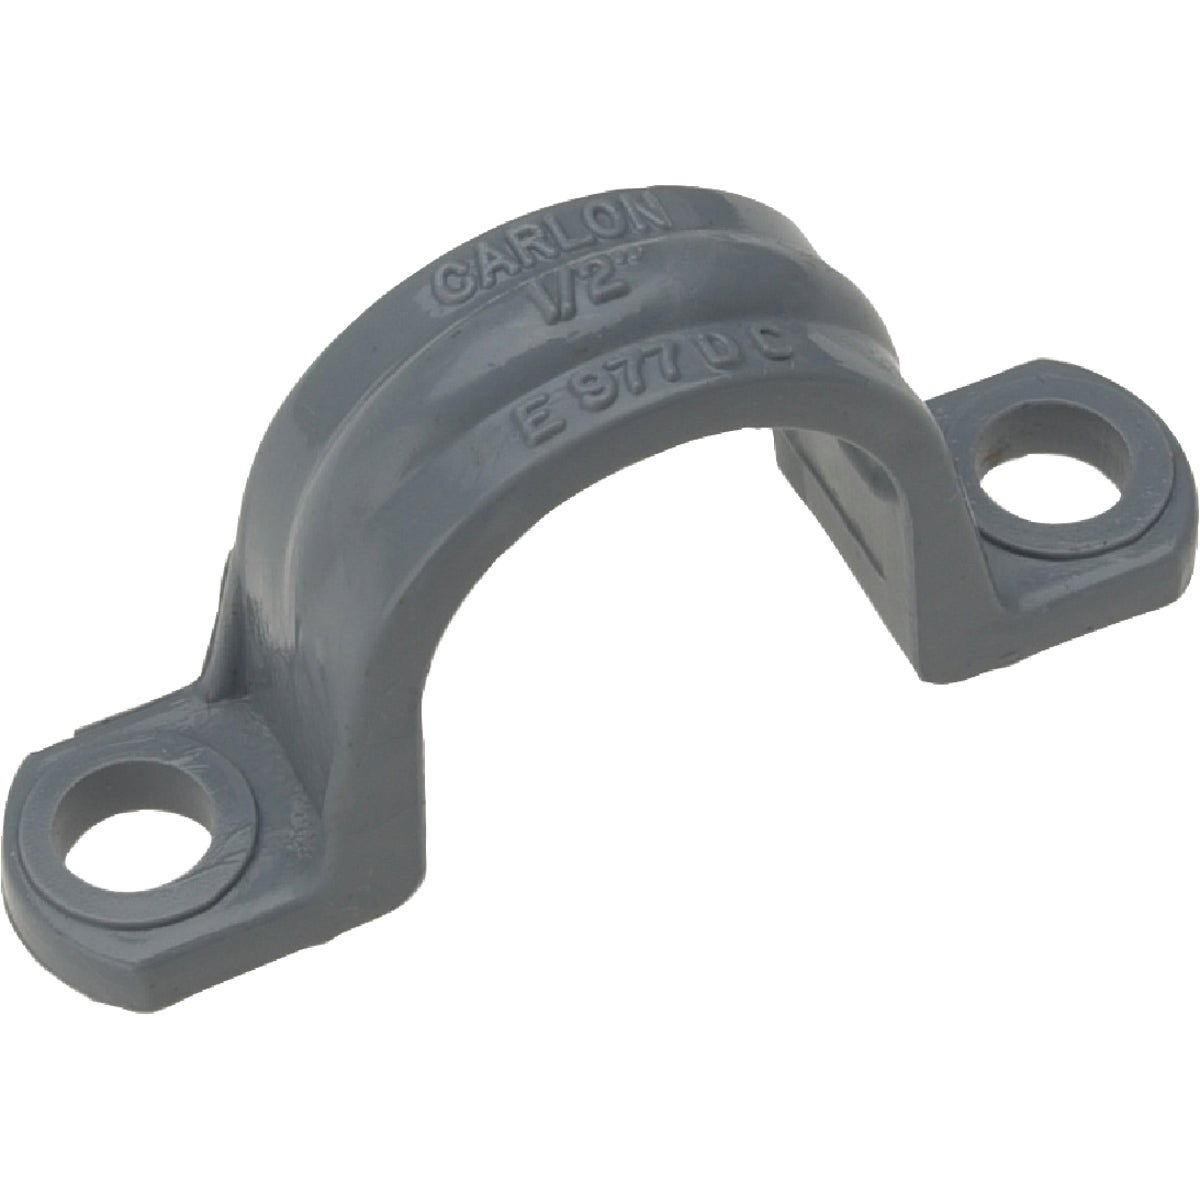 "1-1/4"" PVC STRAP - E977GCCTN by Thomas & Betts"